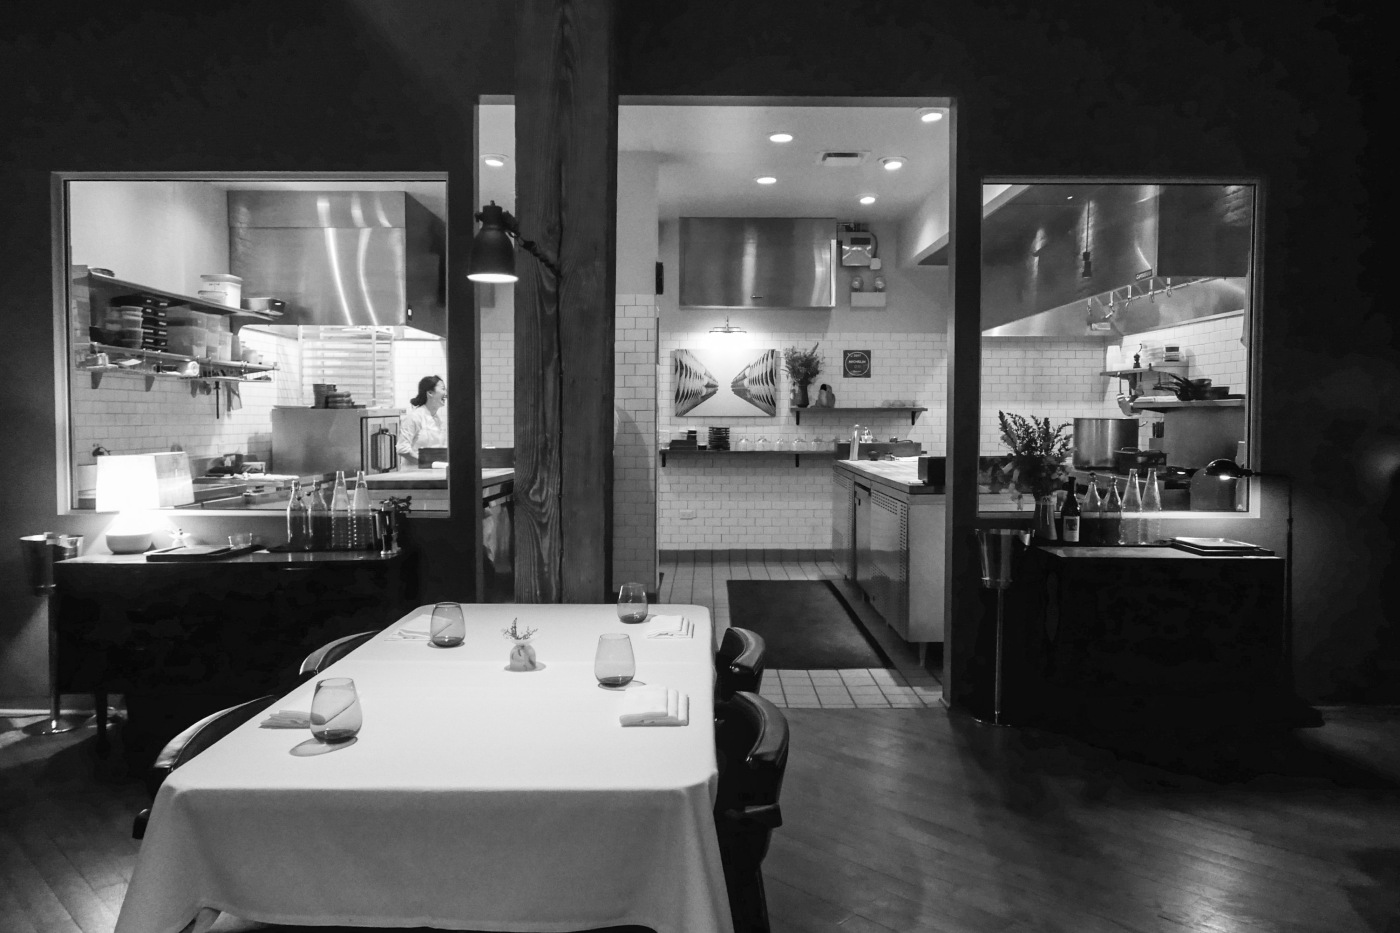 Kitchen at Oriole